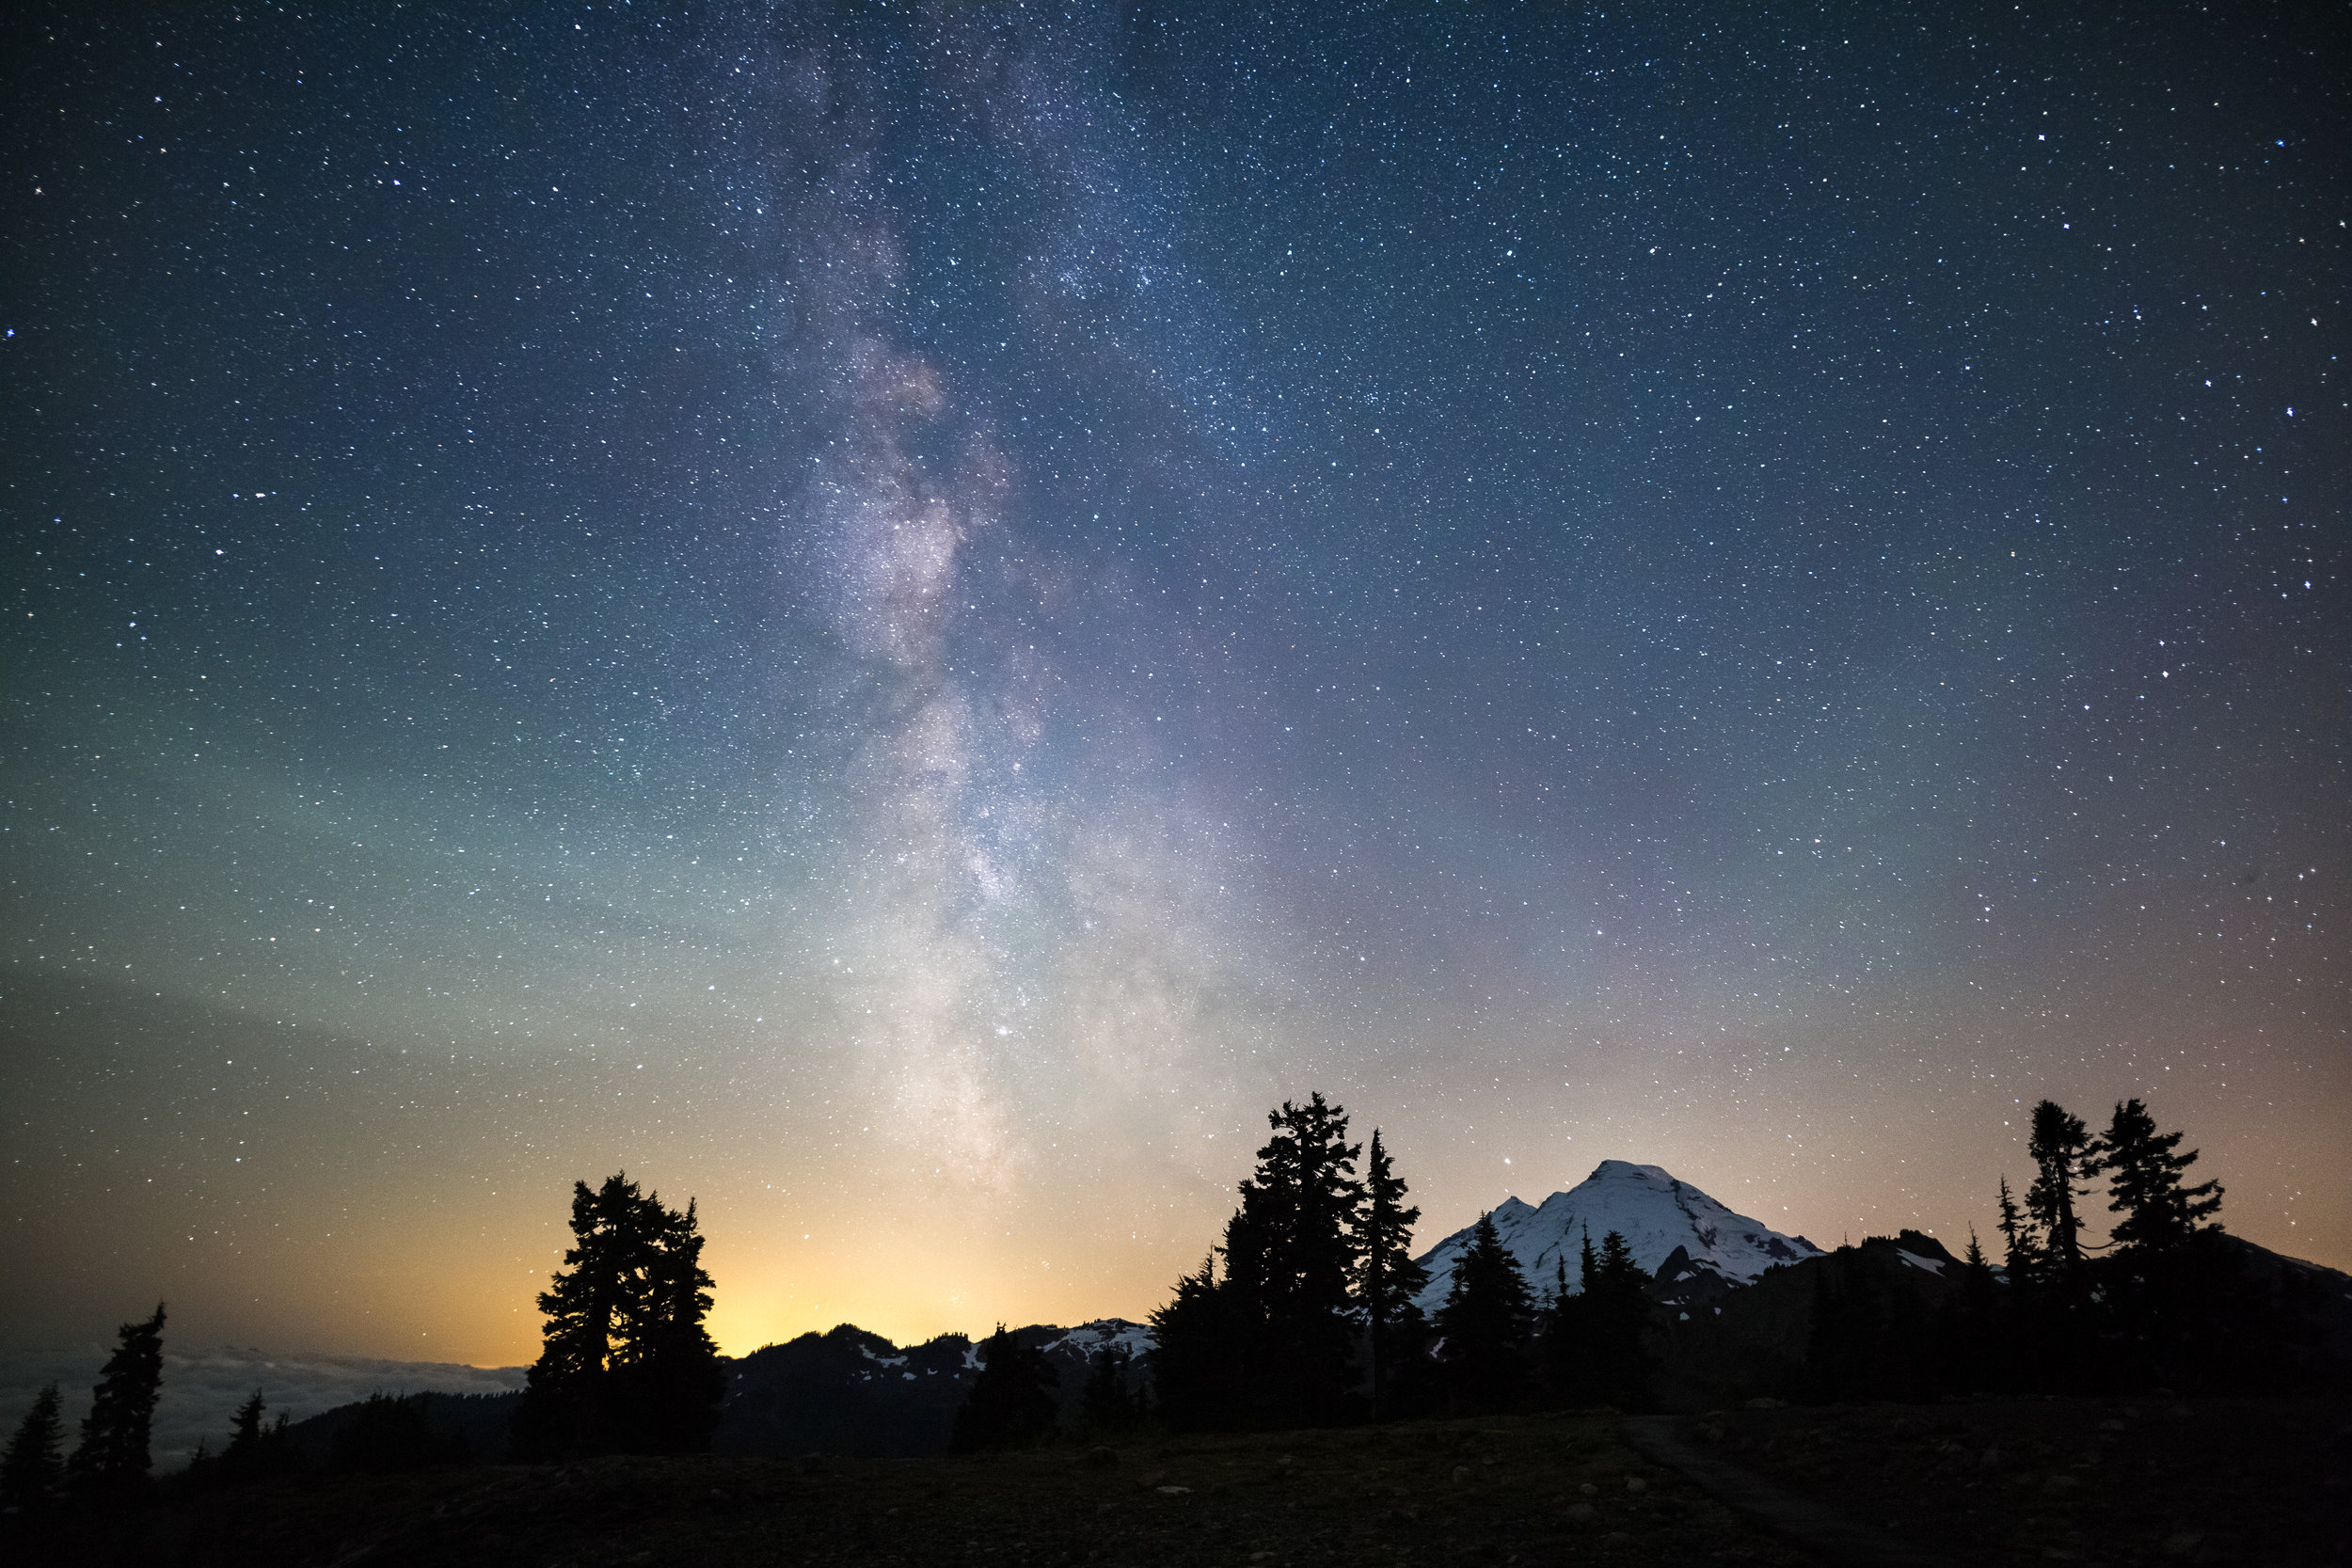 The distant Mount Baker towers over the landscape as the Milky Way streaks across the sky. The distant city lights of the greater Seattle area glow on the horizon.